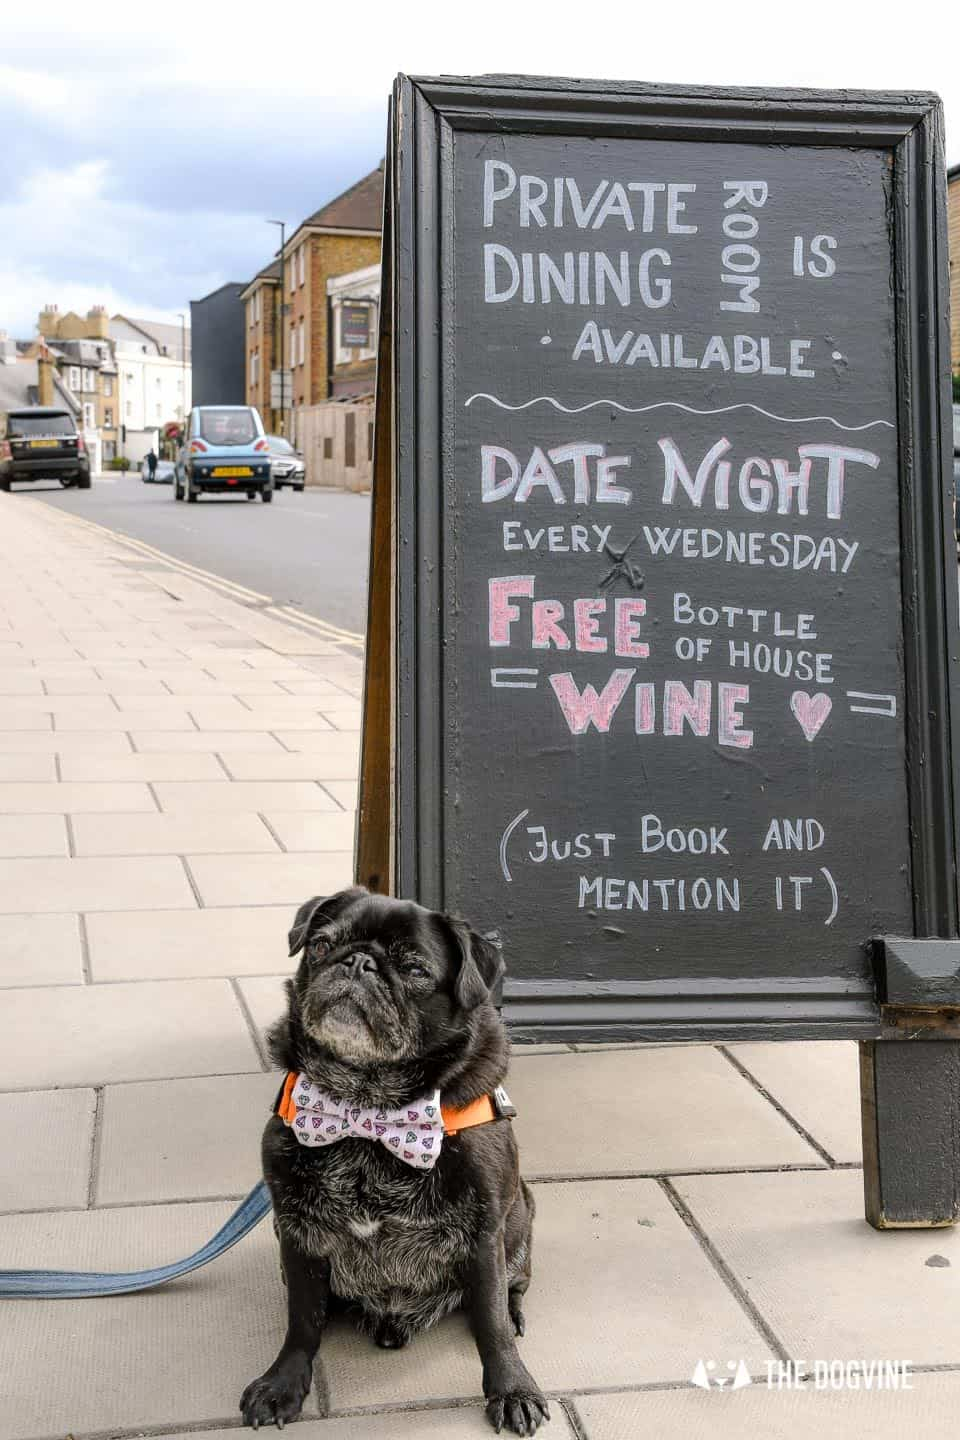 My Dog-friendly London Clapham & Battersea By Hemingway The Pug Number 22 North Street 4